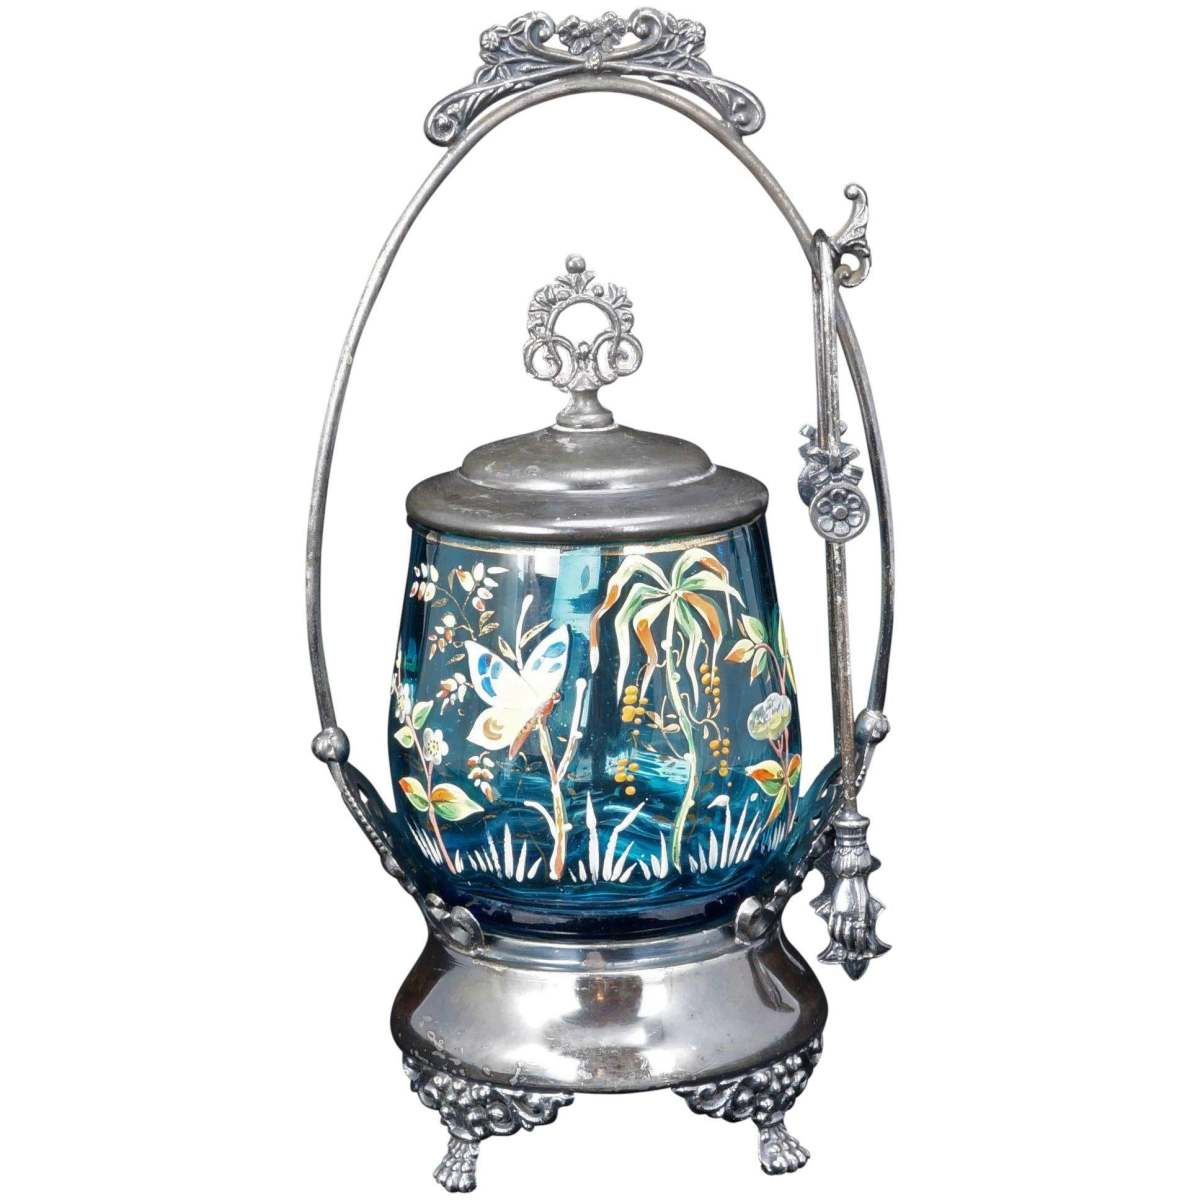 """Silver-plate pickle castor with blue-enameled art glass insert, c1870, in an Aesthetic Movement pattern with paintings of flowers and a pretty butterfly.  The top of the frame has a floral bouquet tied at the middle and the feet are decorated with arabesques and florid designs and have little paws, which coordinate with the hands at the ends of the tongs used to grab the pickles. The lid with an ornate finial fits the jar perfectly. The underside of the frame reads, """"M. S.BENEDICT M.F.G. CO. QUADRUPLE PLATE"""" and the number 264. Frame measures 10-1/4""""h x 5"""" w x 4-1/2"""" dia; glass measures 4"""" dia; $280."""